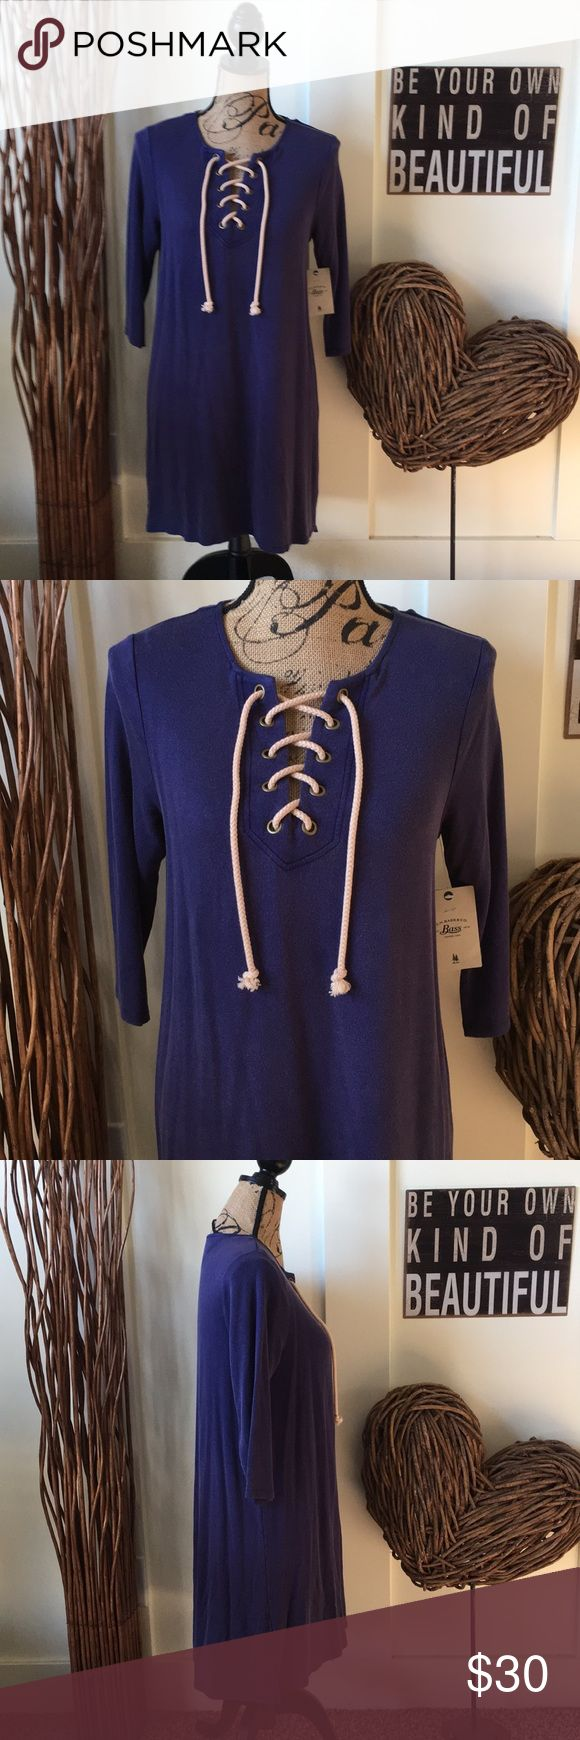 G.H. Bass & Co. laced front t-shirt dress This cute distressed wash T-shirt dress has three-quarter length sleeves and an A-line fit.  It has a laced front with a khaki rope for added style. G.H. Bass & Co. Dresses Midi